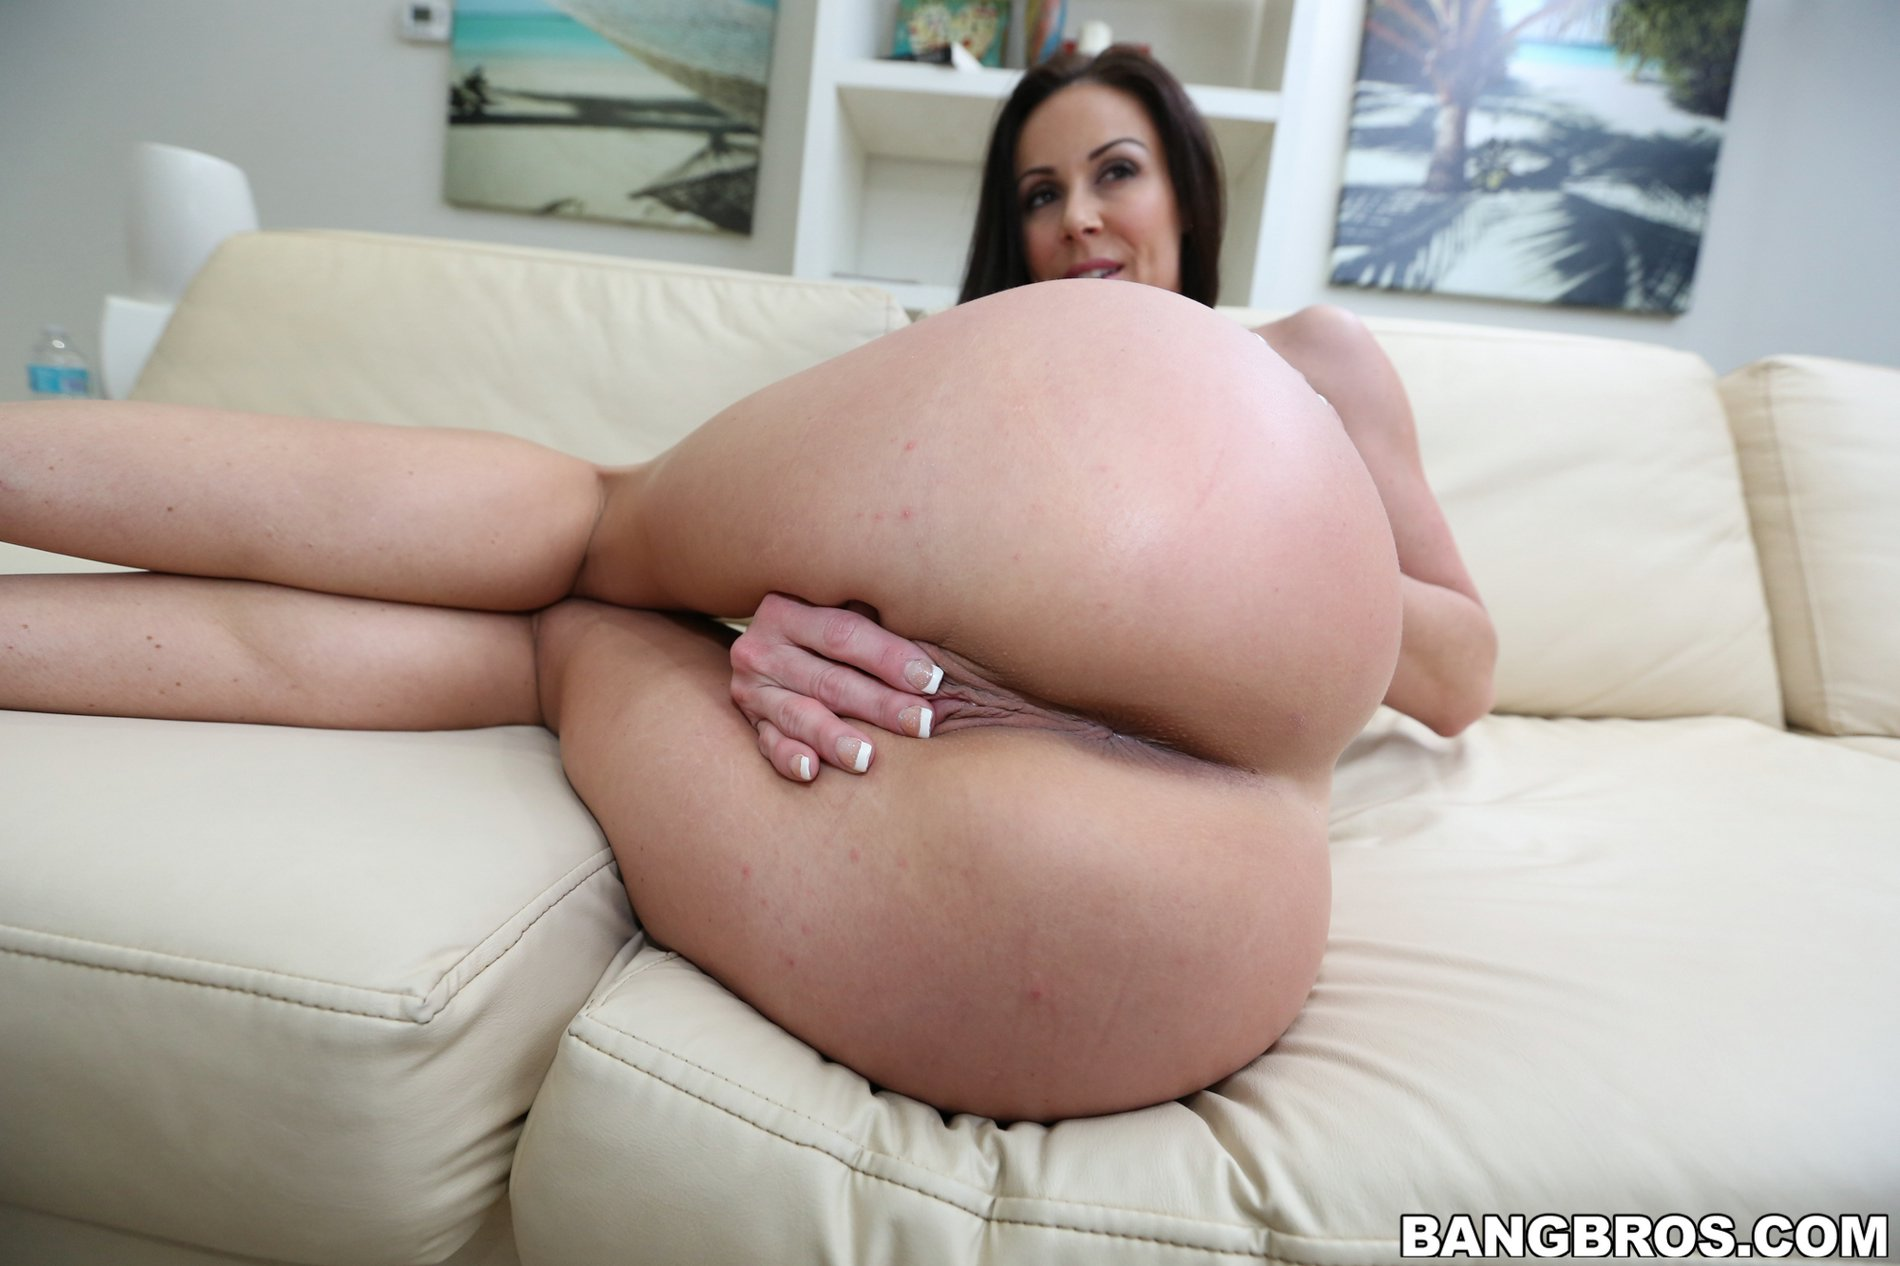 Realitykings hd love noelle easton xander corvus ohh n 9